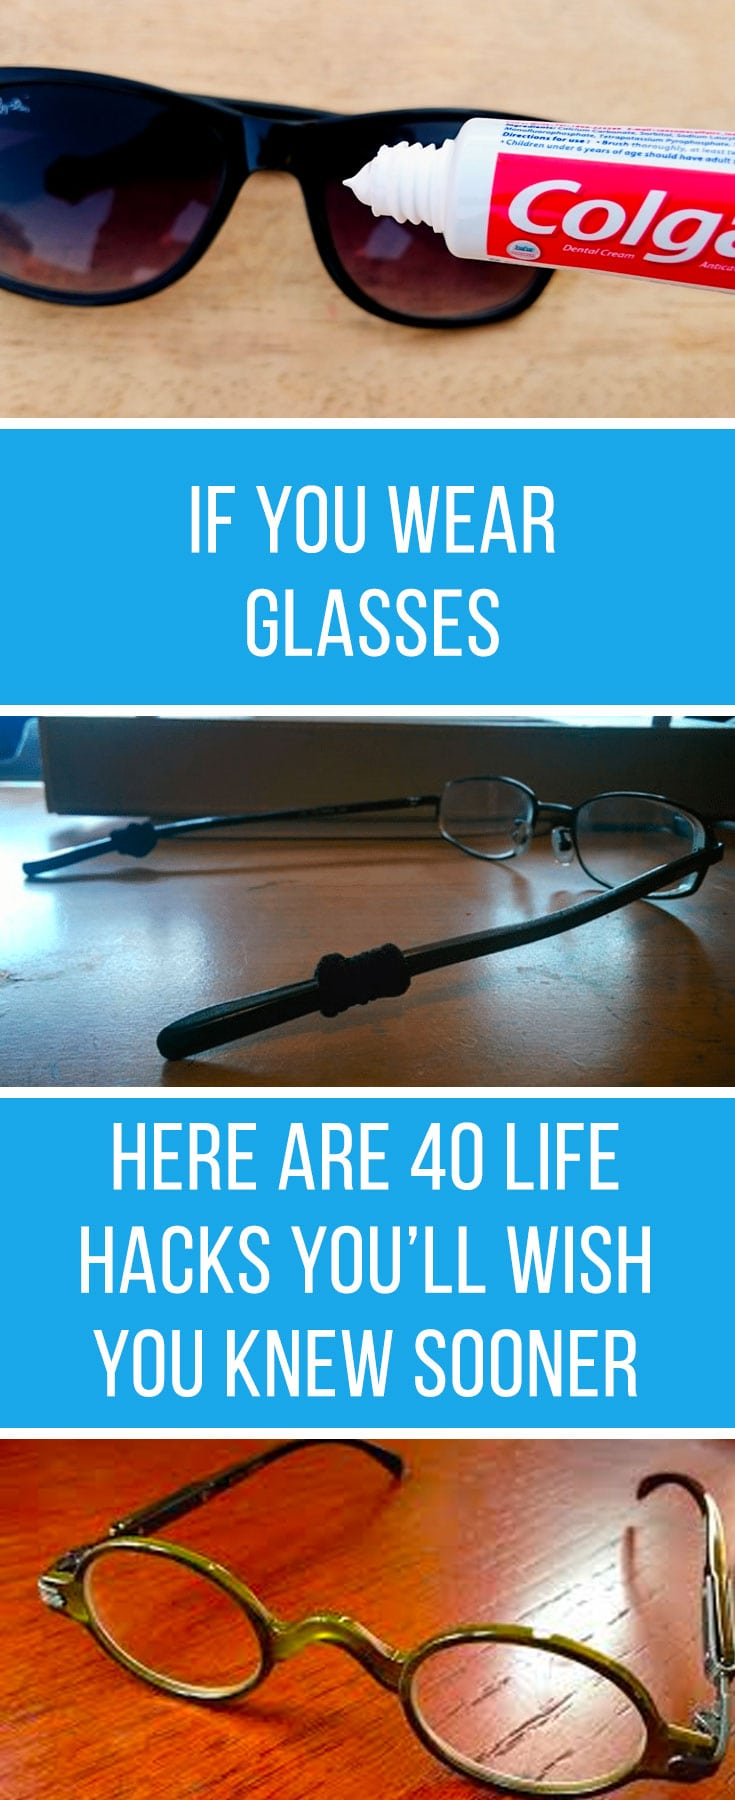 20ac6dad240 If You Wear Glasses